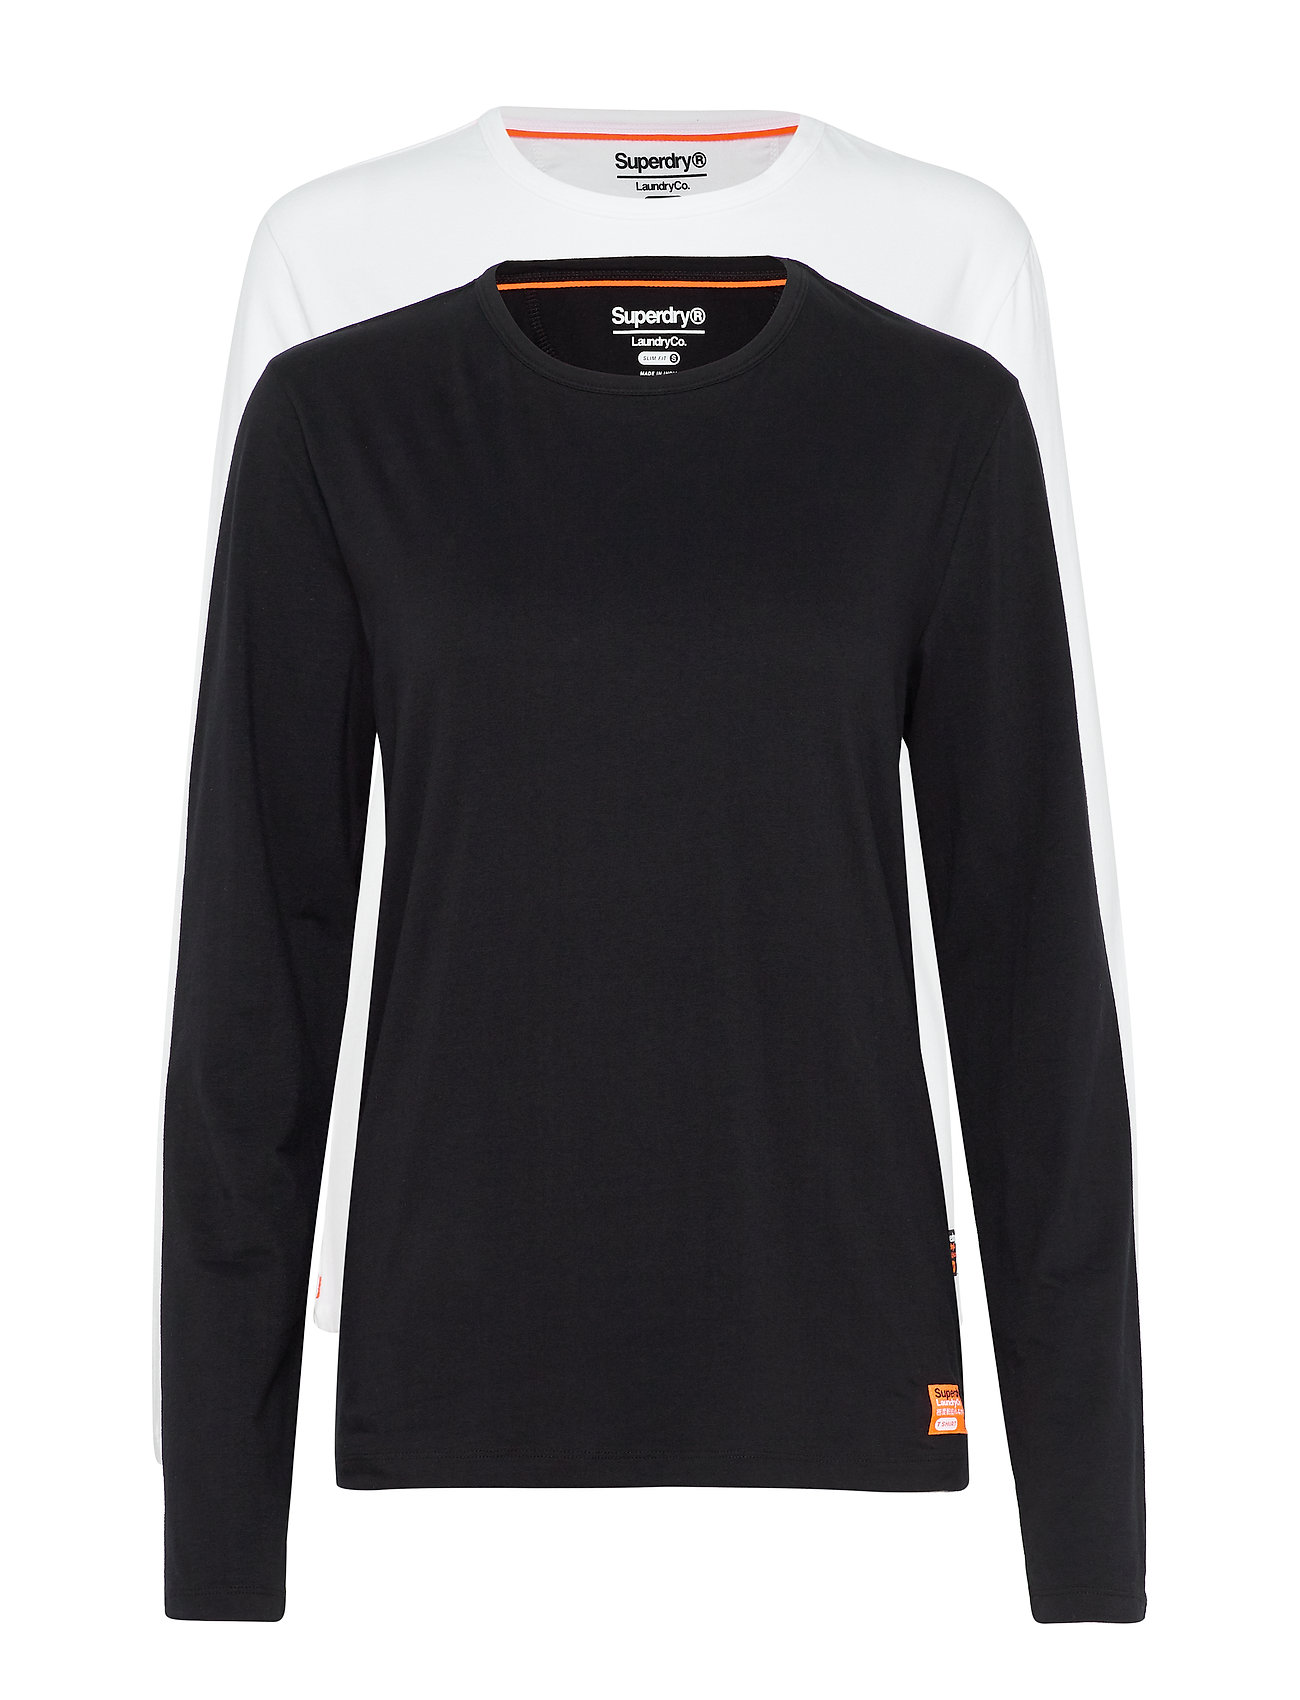 Superdry LAUNDRY SLIM FIT LS TEE DOUBLE PACK - LAUNDRY BLACK/LAUNDRY WHITE